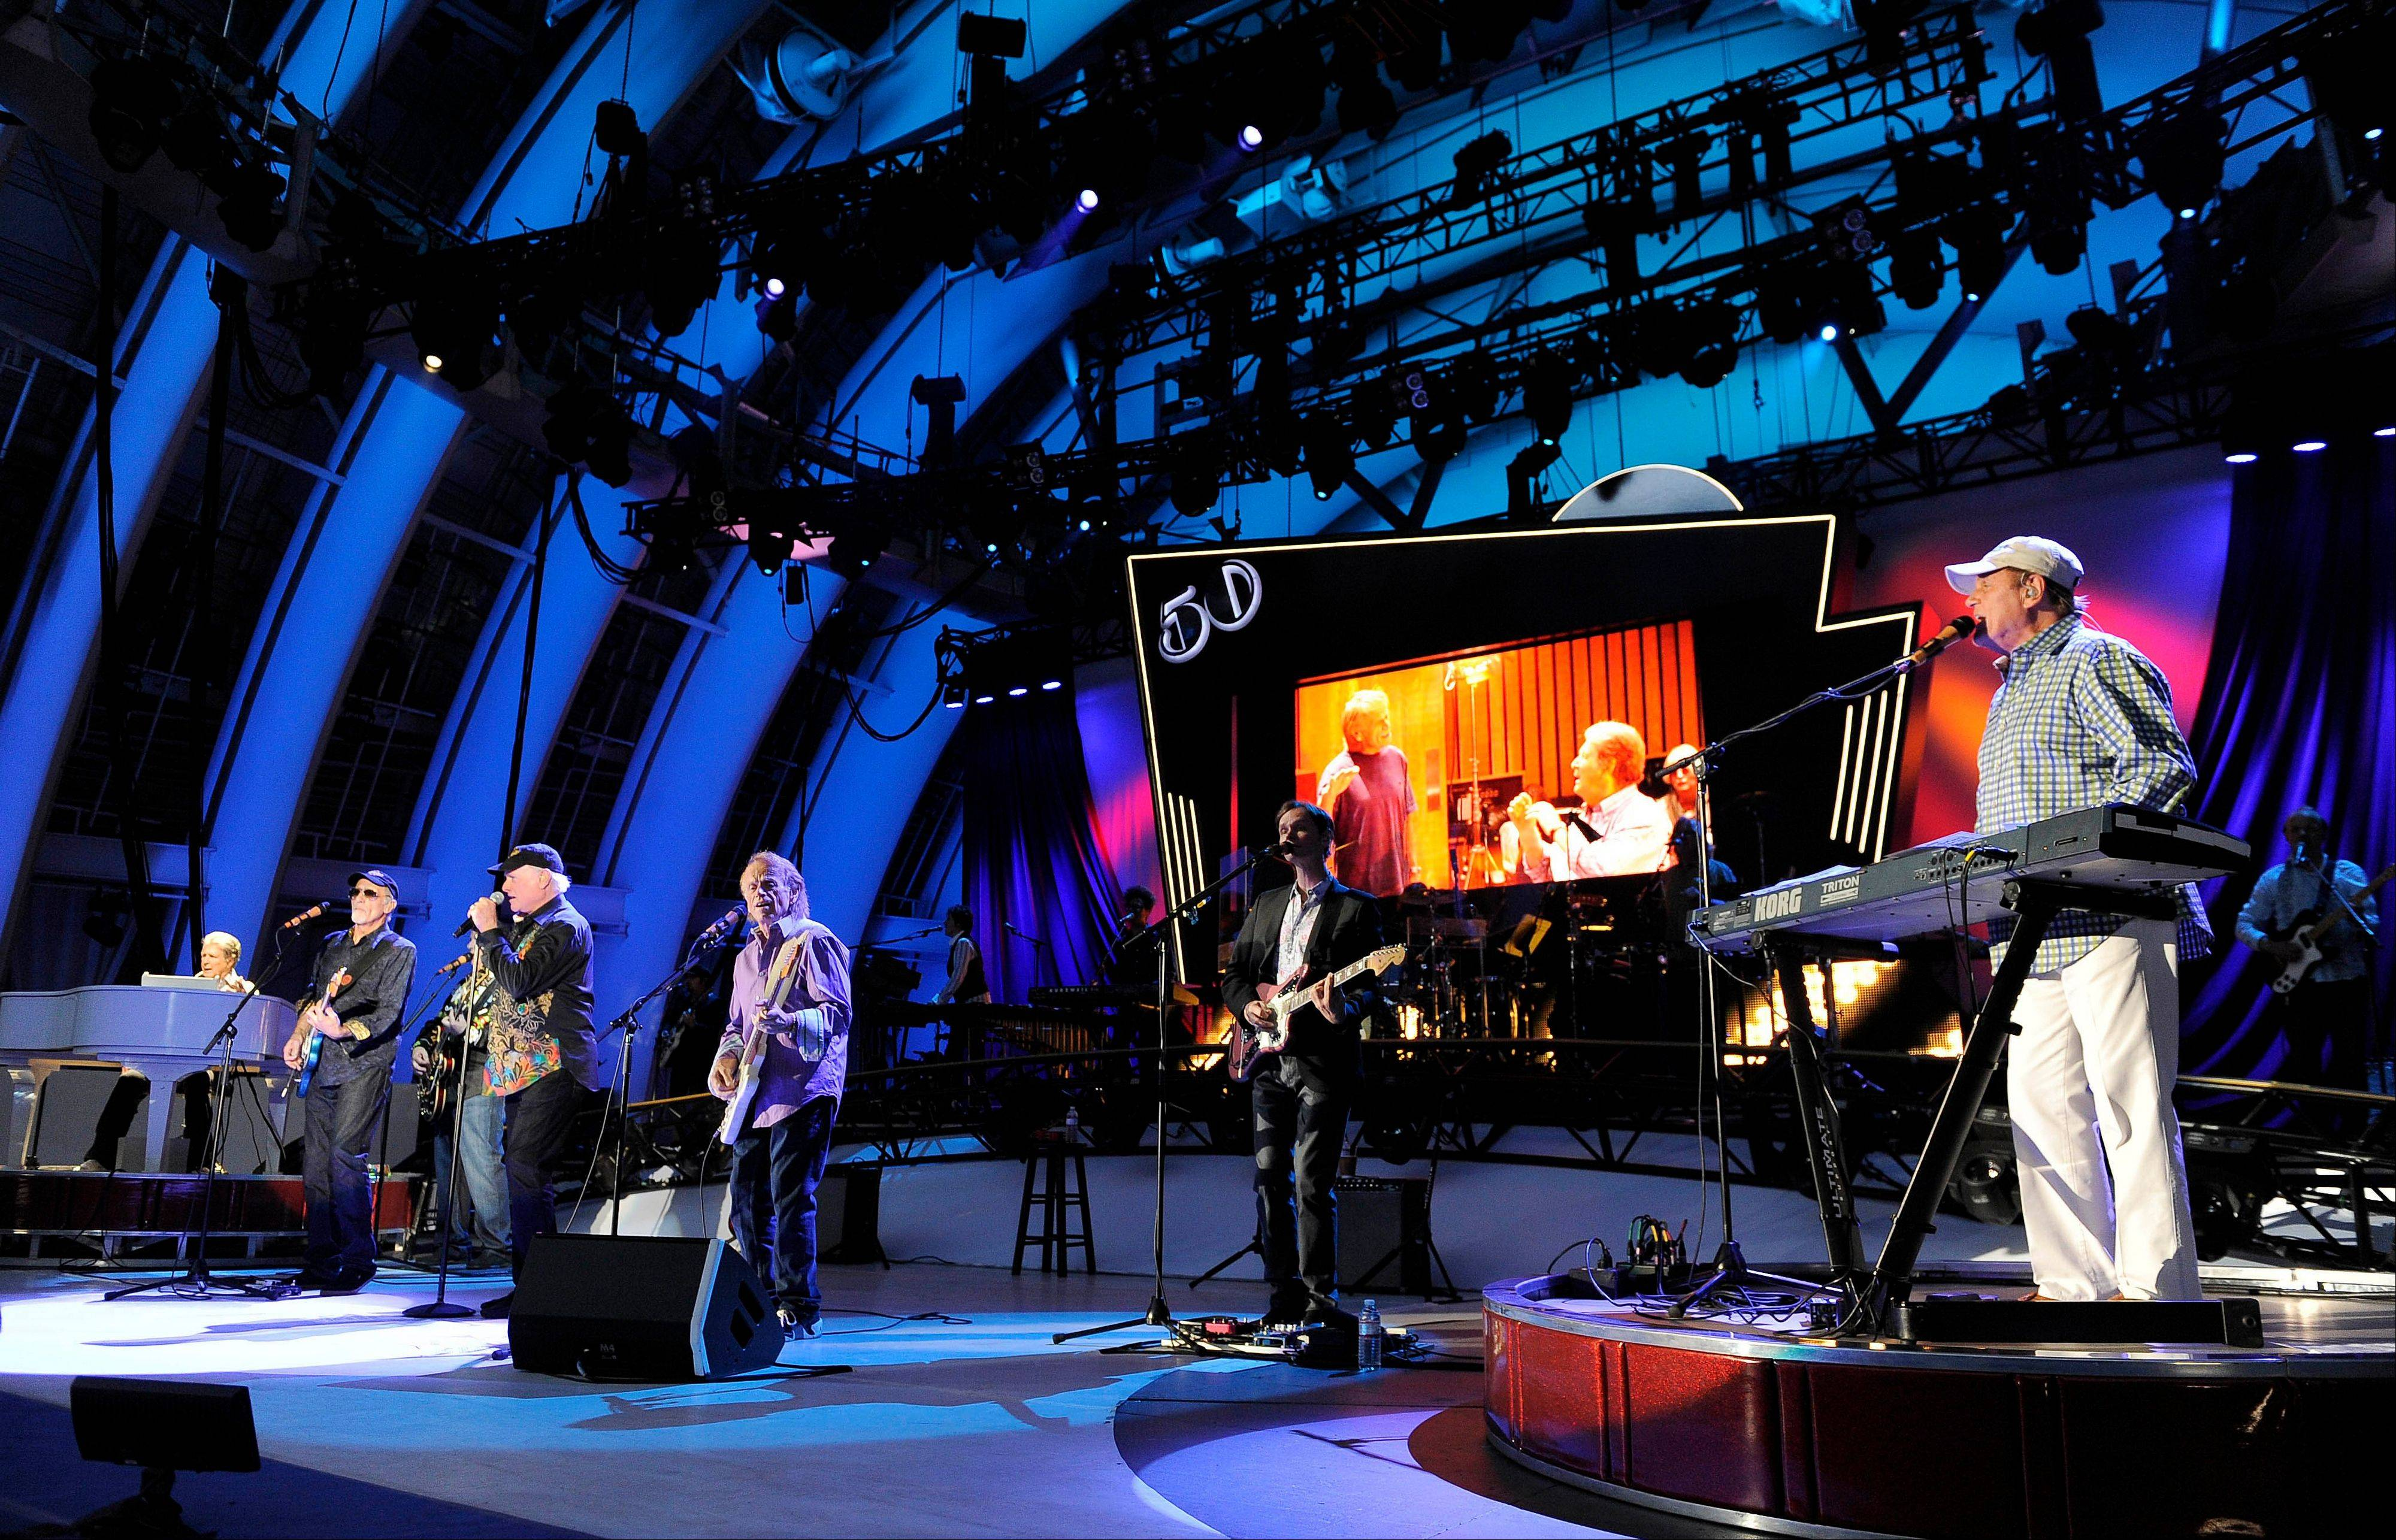 In this June 2, 2012 file photo, The Beach Boys perform at the Hollywood Bowl in Los Angeles. Brian Wilson says he felt blindsided by a news release from his Beach Boys bandmate Mike Love that ended the good vibrations on the band's 50th anniversary tour. Wilson says the expectation was that both sides would help craft and approve the news release. That didn't happen and now he thinks it's Love's turn to reach out.